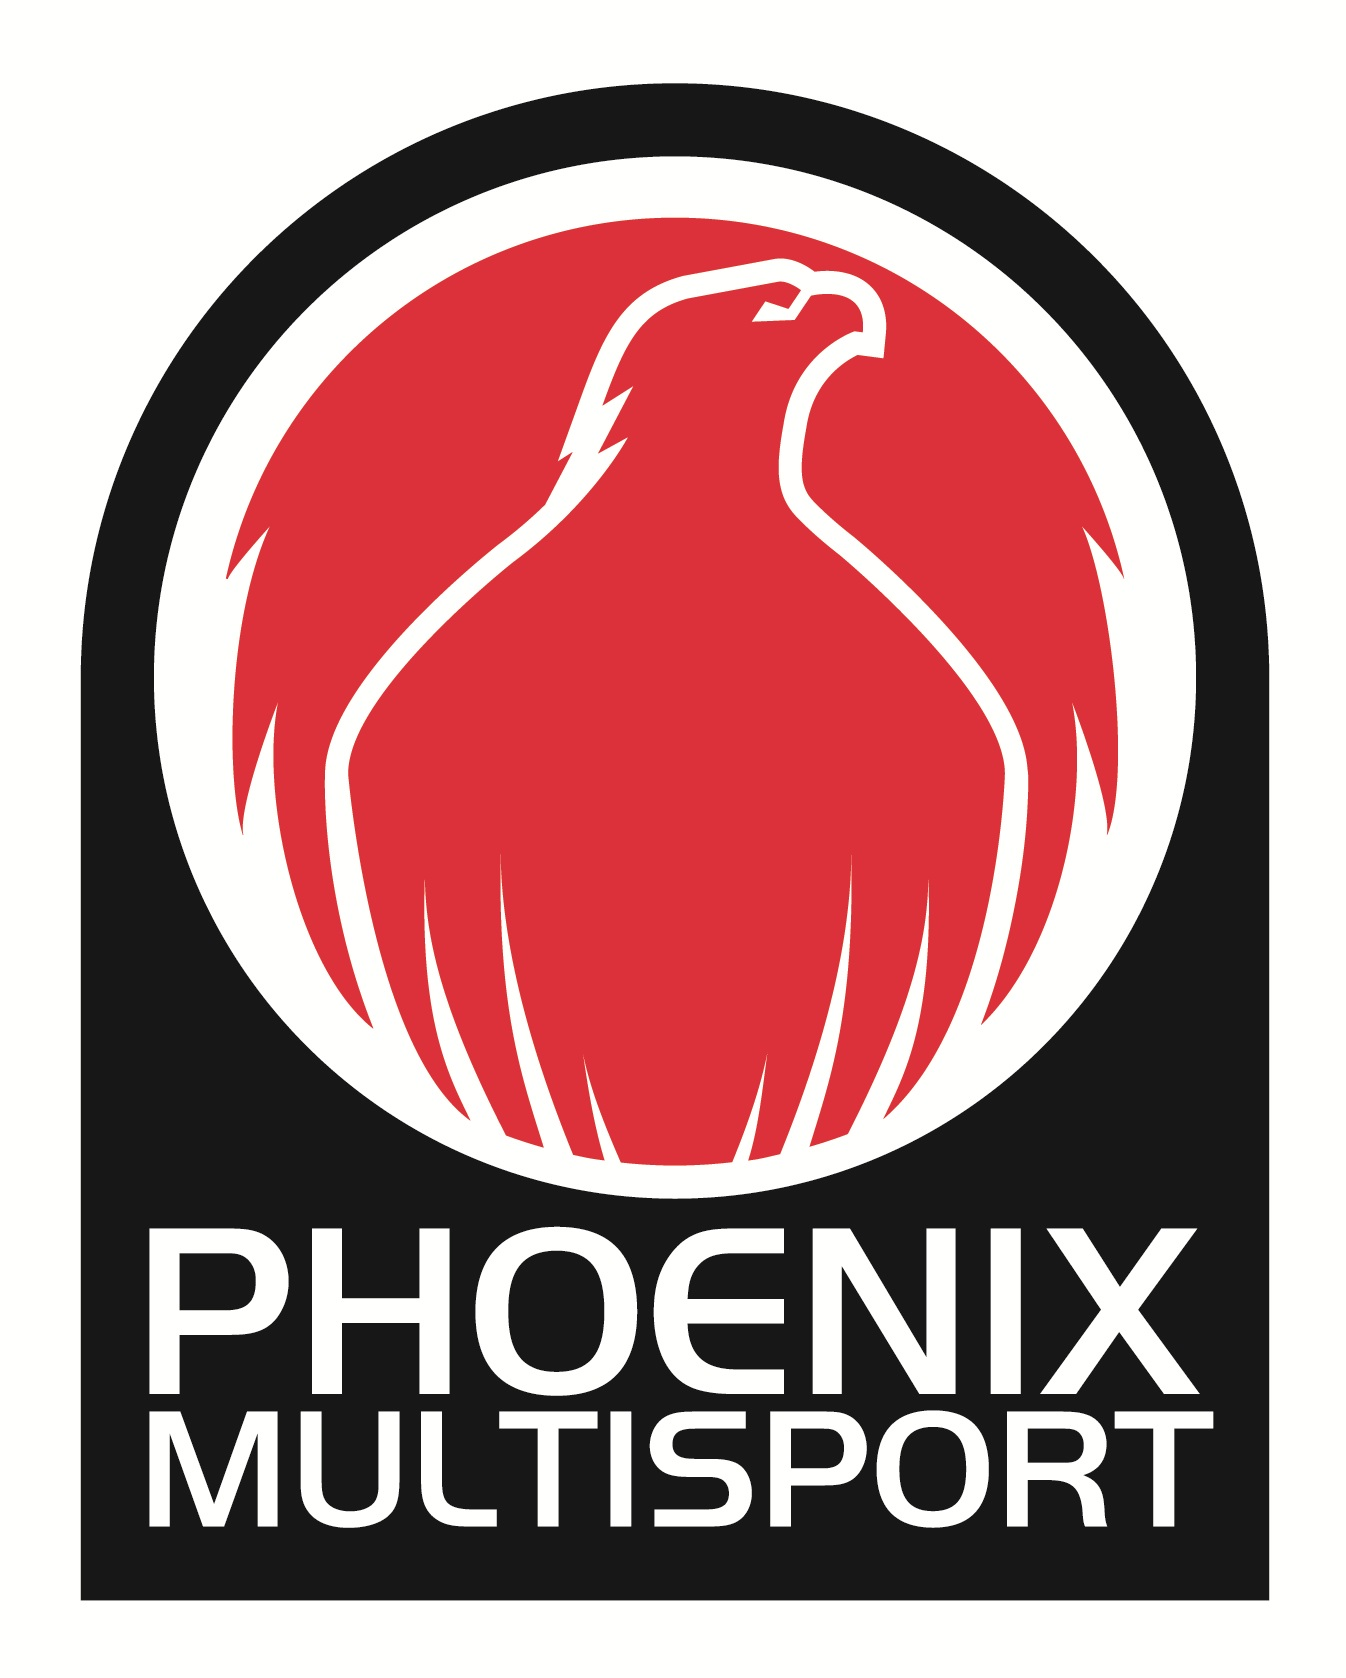 Phoenix Multisport - We are The Phoenix, and since 2006, our free sober active community has inspired more than 22,000 people across America to believe they have the strength to rise from the ashes of addiction through the support of those who are walking that very same path.There is something about ascending your first summit that makes you feel like anything is possible. A glimmer of hope arises within that makes you believe that you can beat substance use disorder. From CrossFit and climbing, to hiking, running, cycling, yoga and more, we believe fostering human connections in mental, physical and spiritual fitness is a powerful way to rebuild wounded bodies and spirits, and restore hope.The only membership fee is 48 hours of continuous sobriety… And we're here for you when you're ready, because together we are stronger…